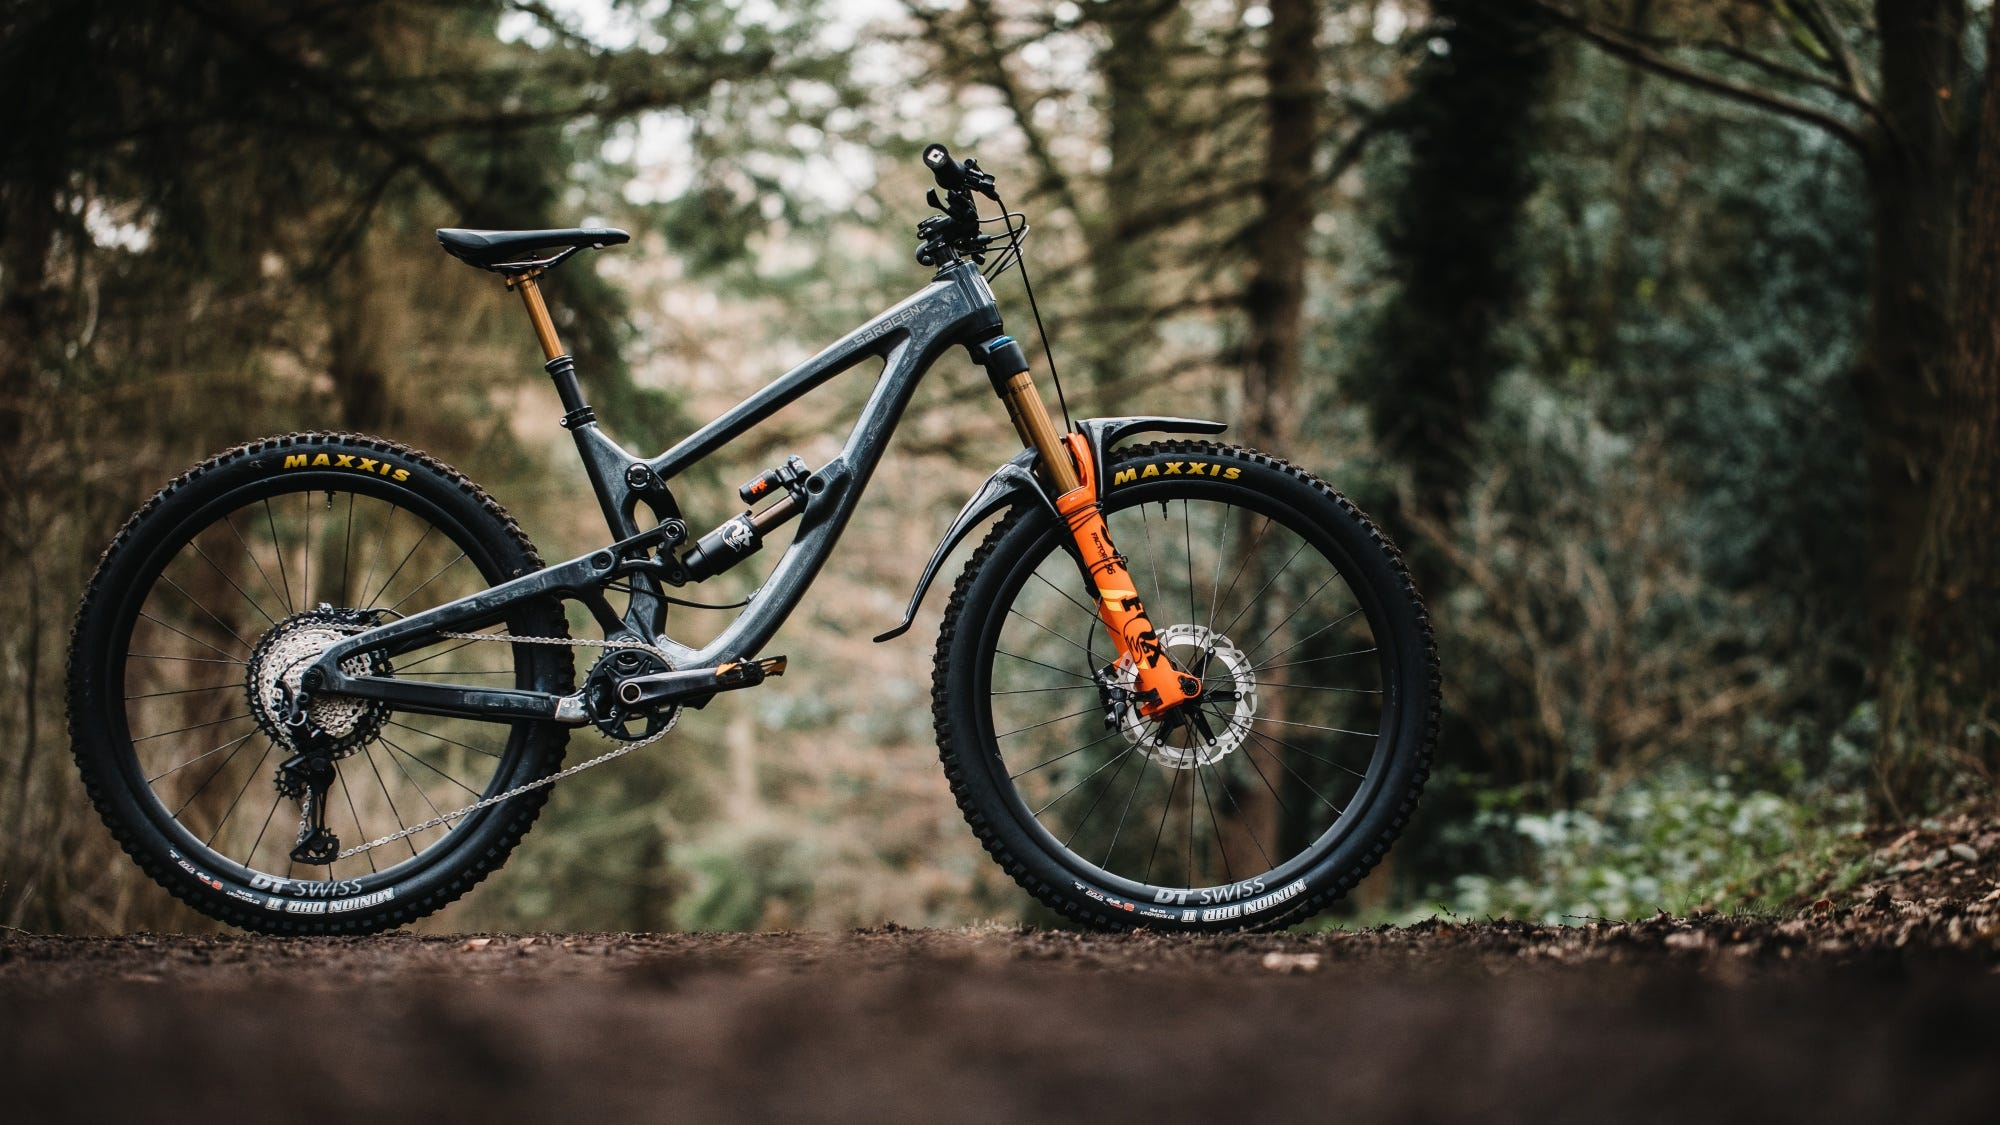 Throwback: This Saracen Ariel LTX dream build will make you want to ride